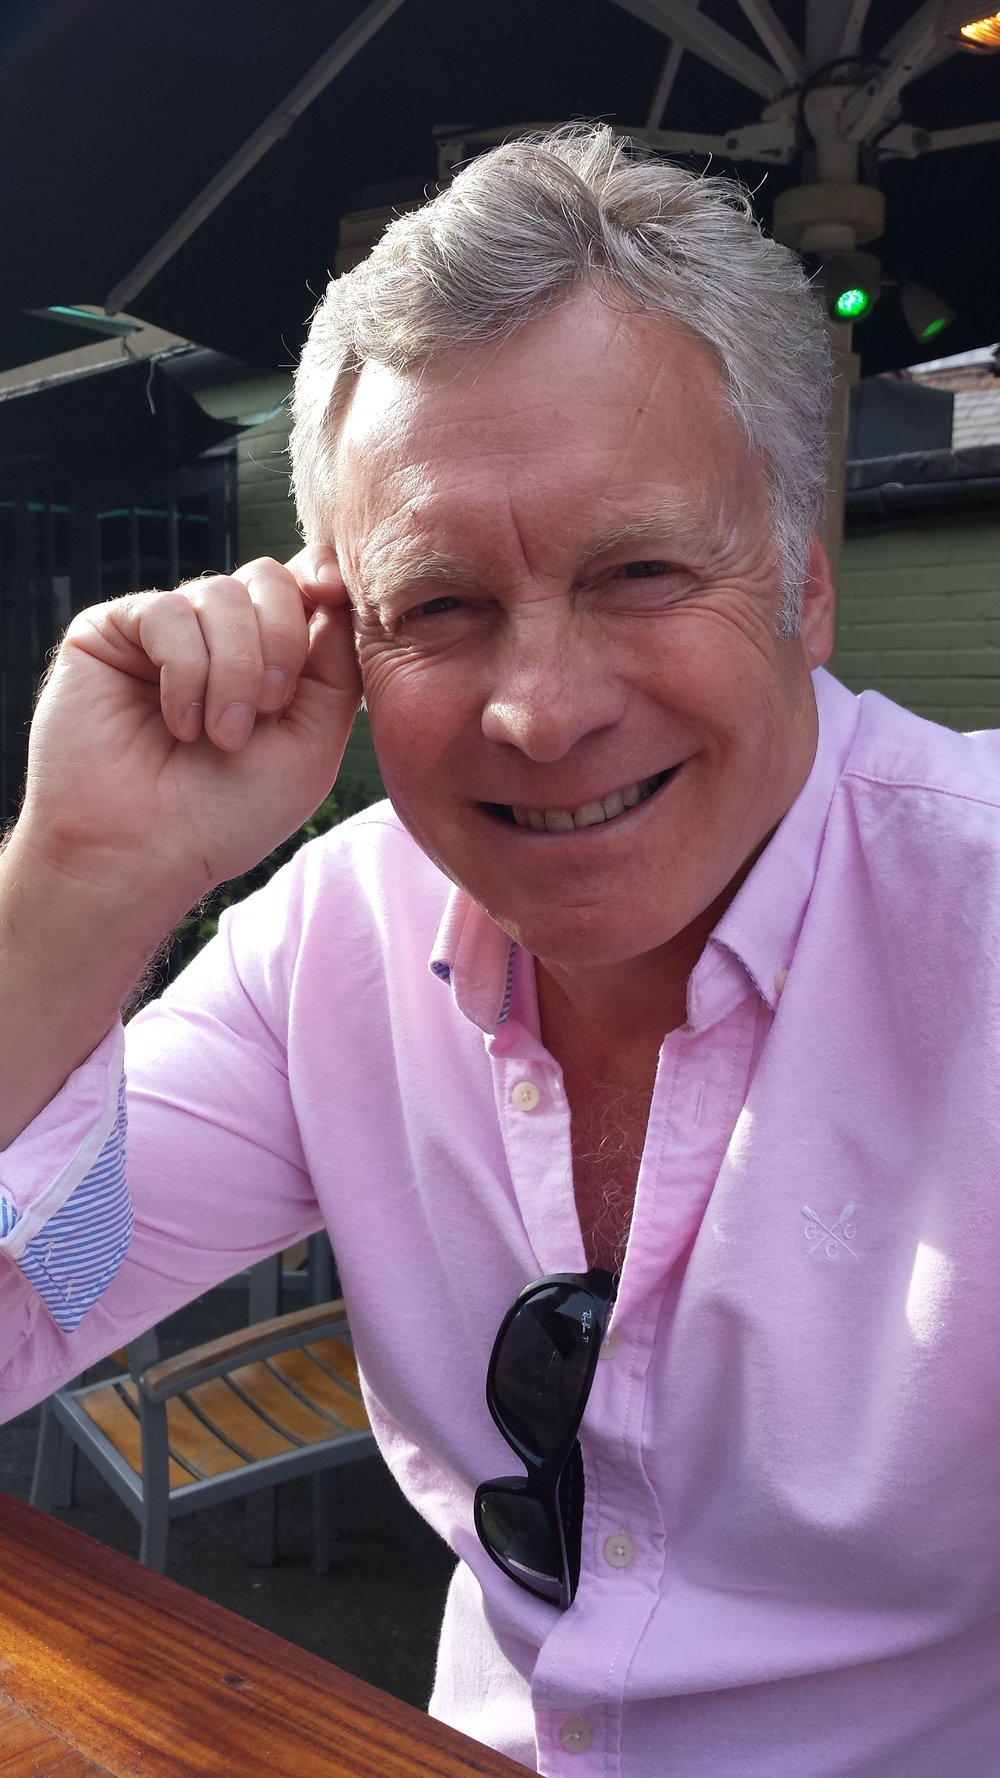 Tony Fisher - Associate - Tony is the Founder of the Iridium Luxury Lifestyle Club and supports Susan with the implementation of interior design projects for Iridium Luxury Interiors.Tony's previous roles have been various and includes the establishment of the Federation of Crafts and Commerce, an SME support organisation in early 1980s; managing a luxury Corporate Events division of a high-end tour company and operating a corporate well-being company which also pioneered 'healthy vending' in the workplace, schools and universities.Over the past three years, Tony has worked with numerous high-end luxury brands internationally, including furniture and home-related products, property, art, watches, jewellery, superyachts, luxury cars and private jets.